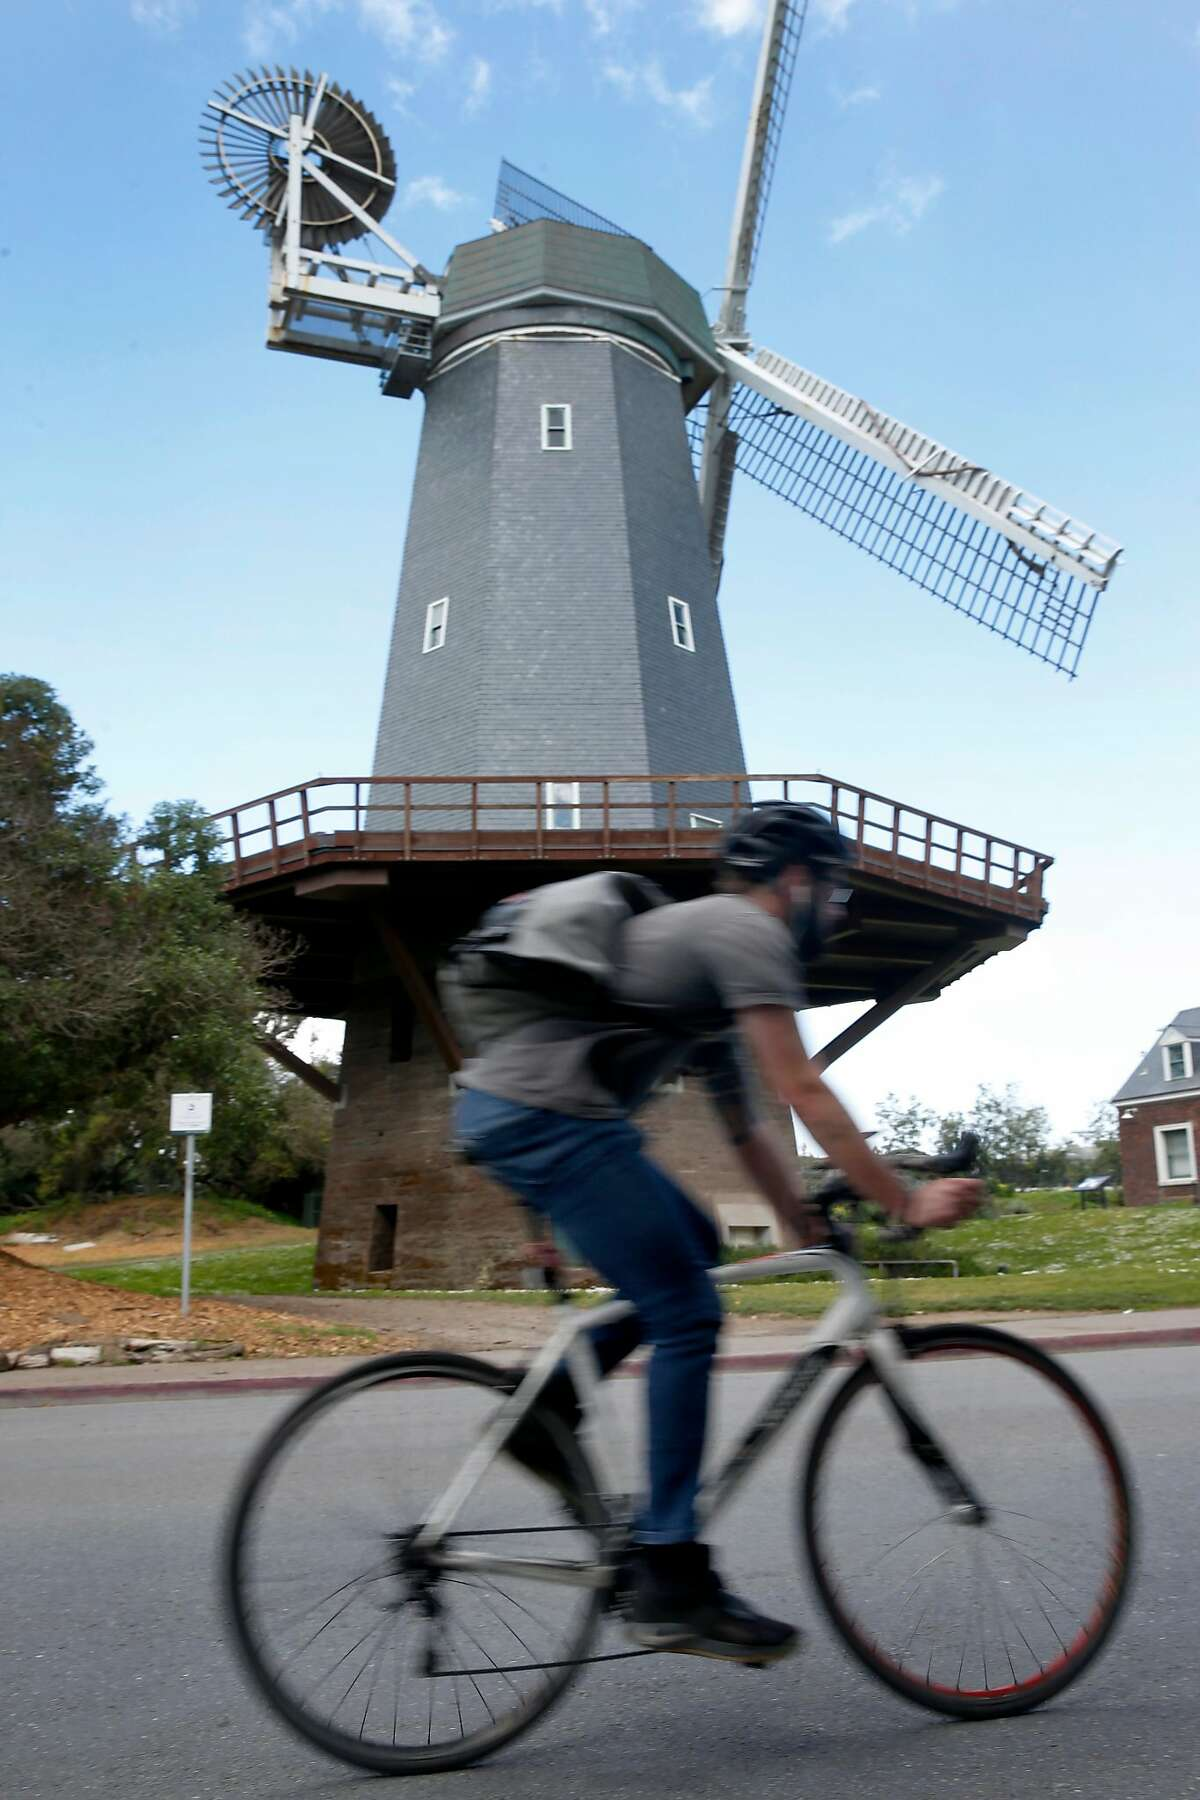 A bicyclist rides past the Murphy windmill in Golden Gate Park during the coronavirus pandemic in San Francisco, Calif. on Friday, March 20, 2020.